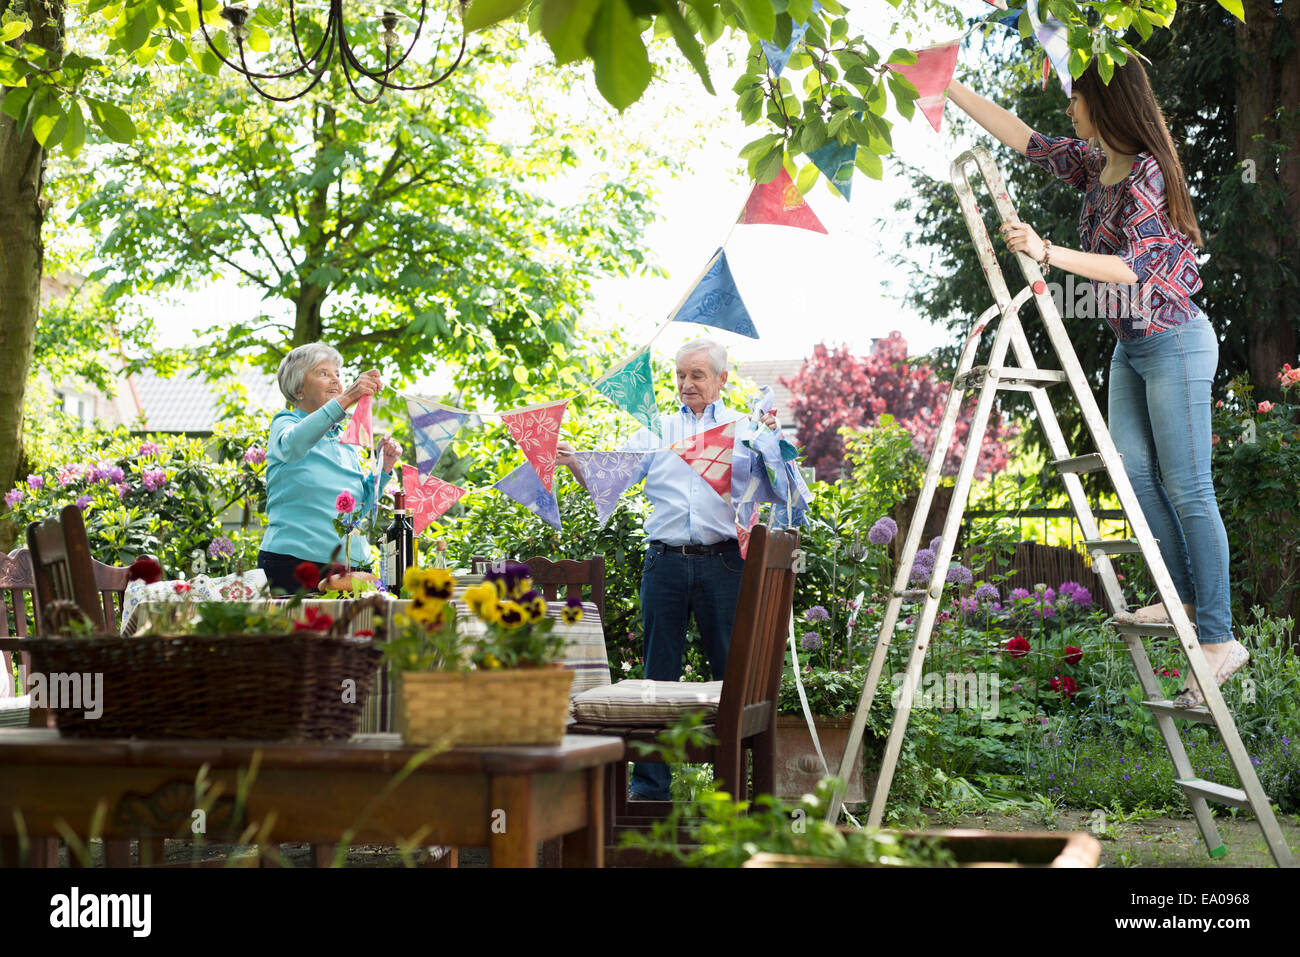 Grandparents and granddaughter hanging up bunting - Stock Image